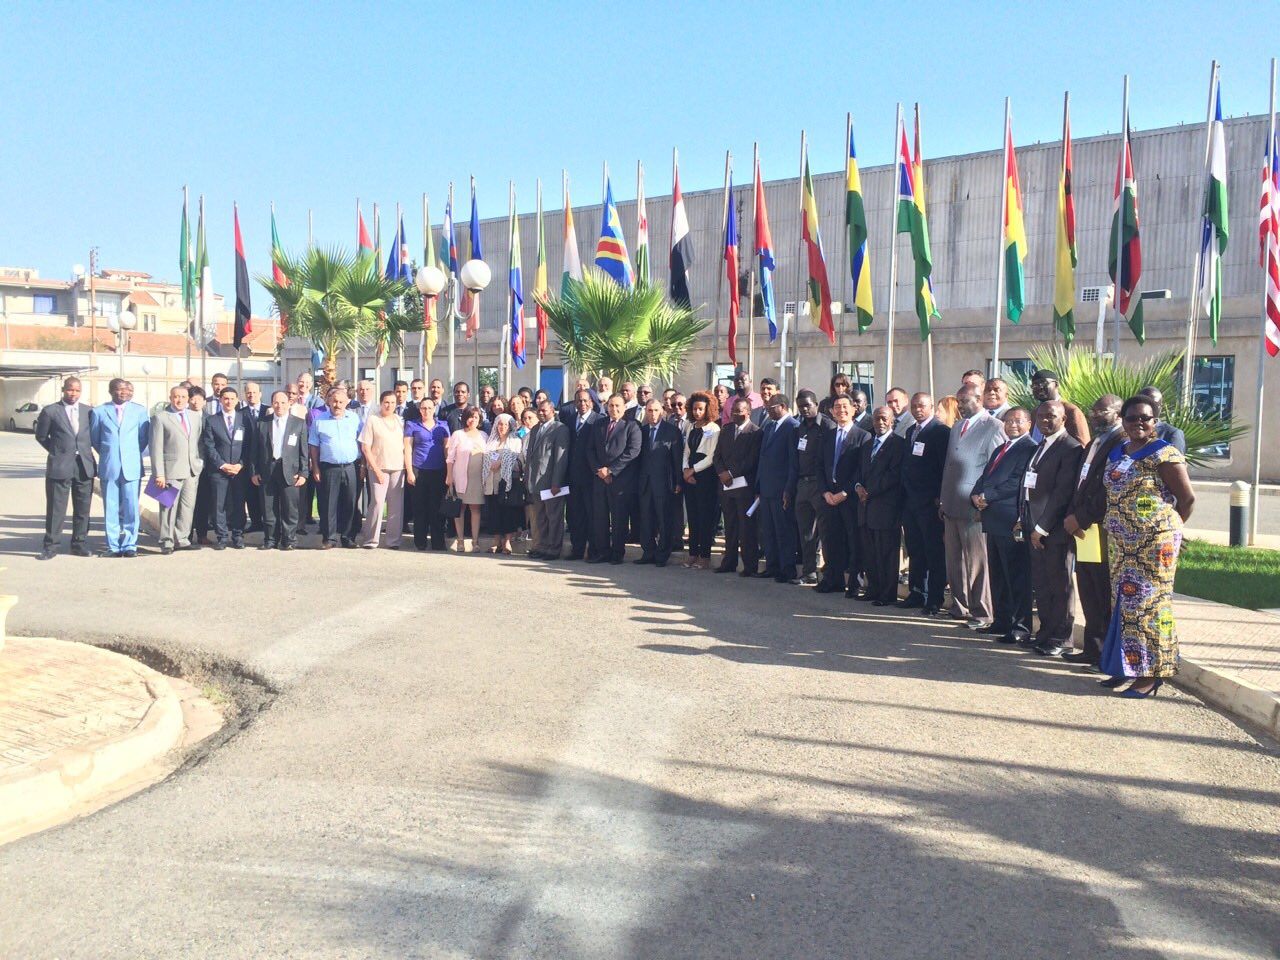 Symposium on victims of terrorist acts opens today in Algiers